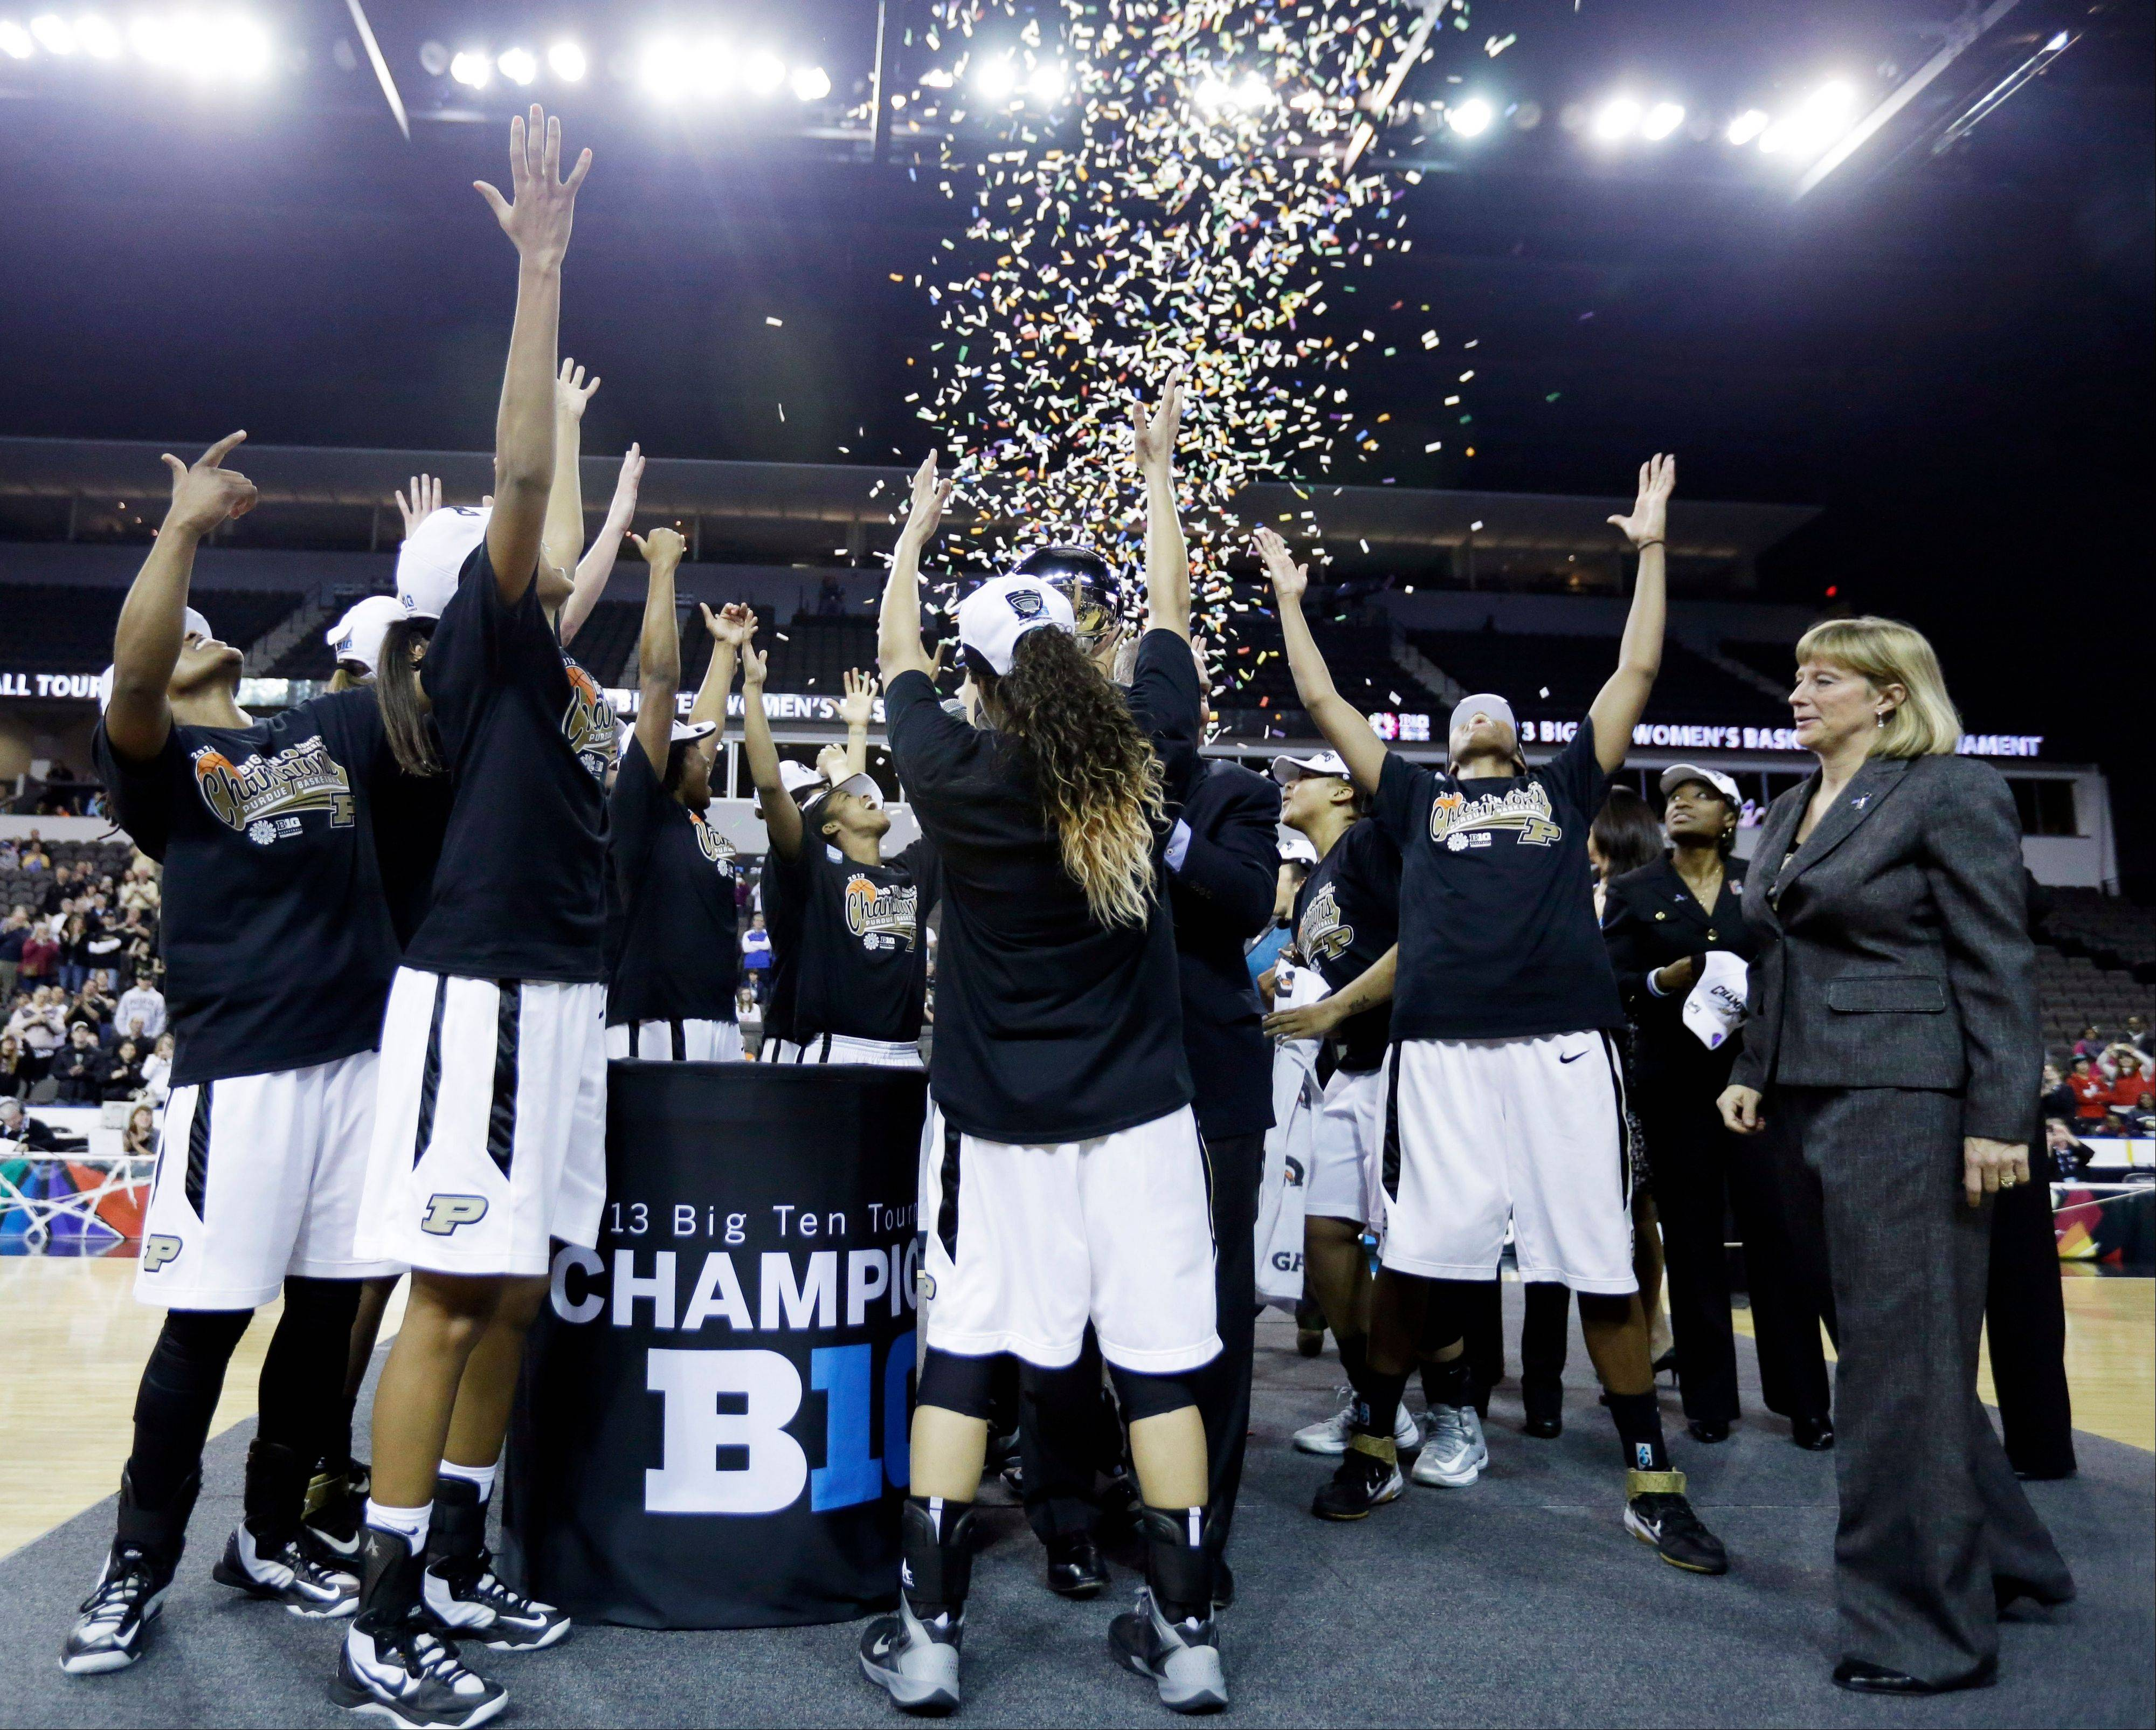 Purdue head coach Sharon Versyp, right, celebrates with her team after their 62-47 win over Michigan State in the championship of the Big Ten Conference tournament Sundat at Sears Centre Arena in Hoffman Estates.